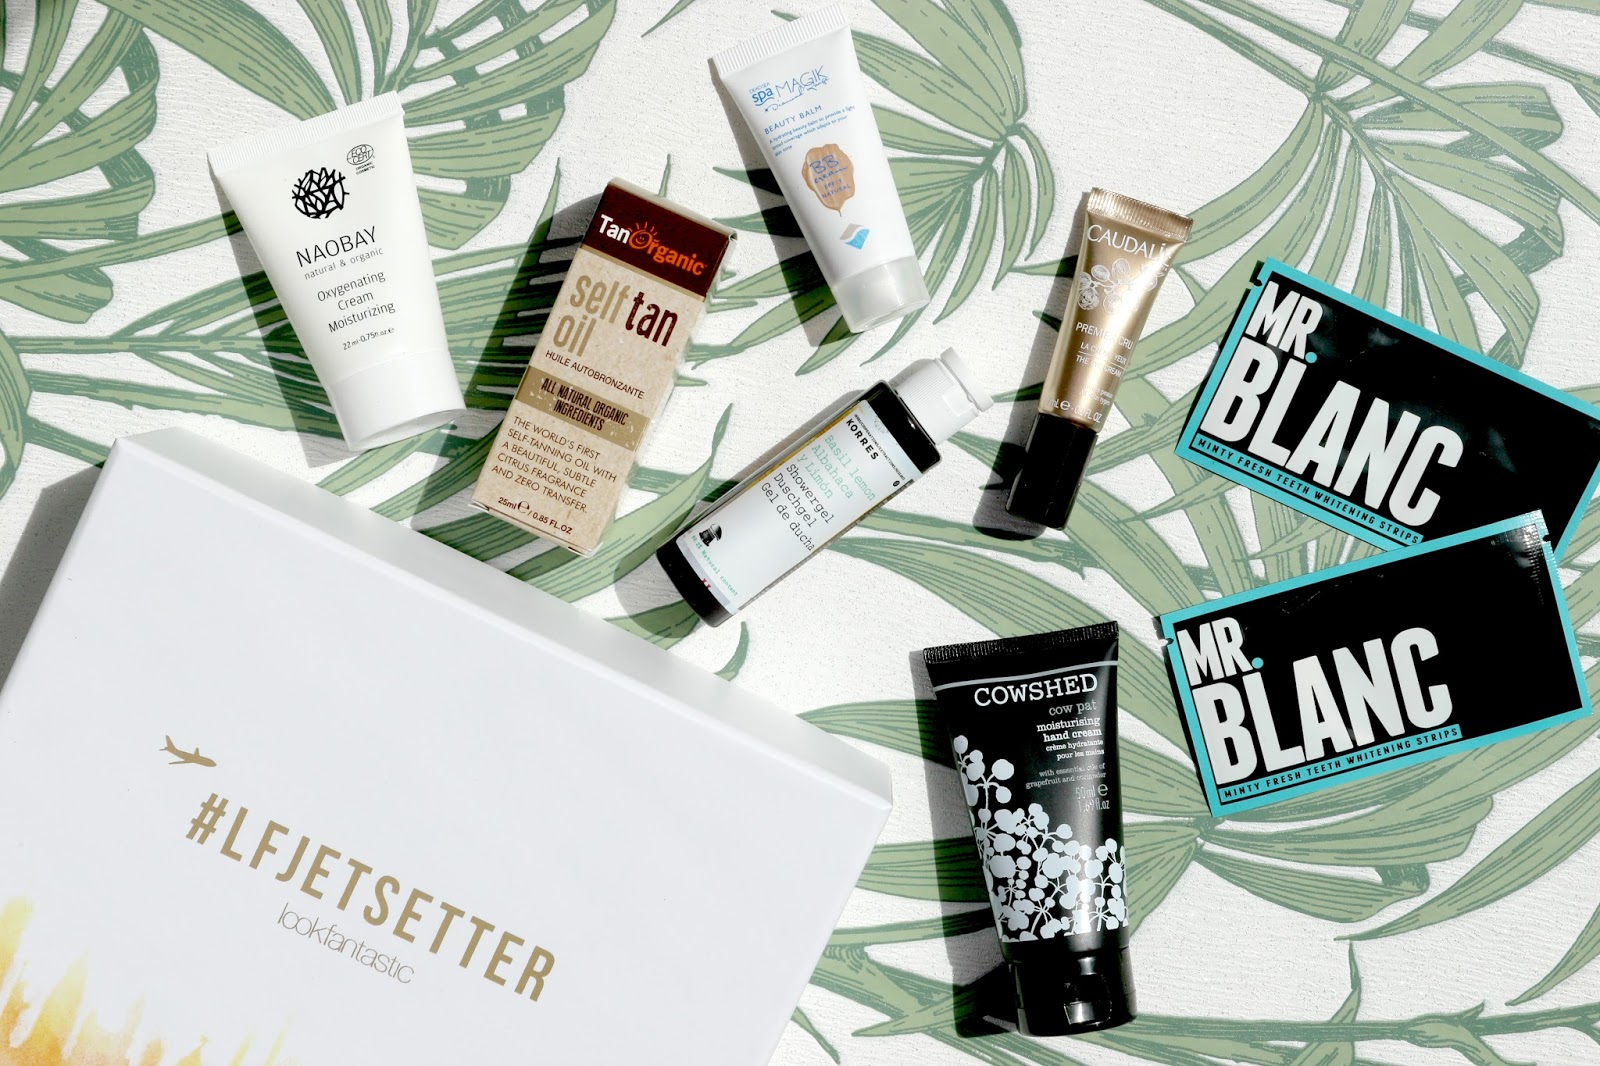 #LFJetsetter Look Fantastic Beauty Box Review